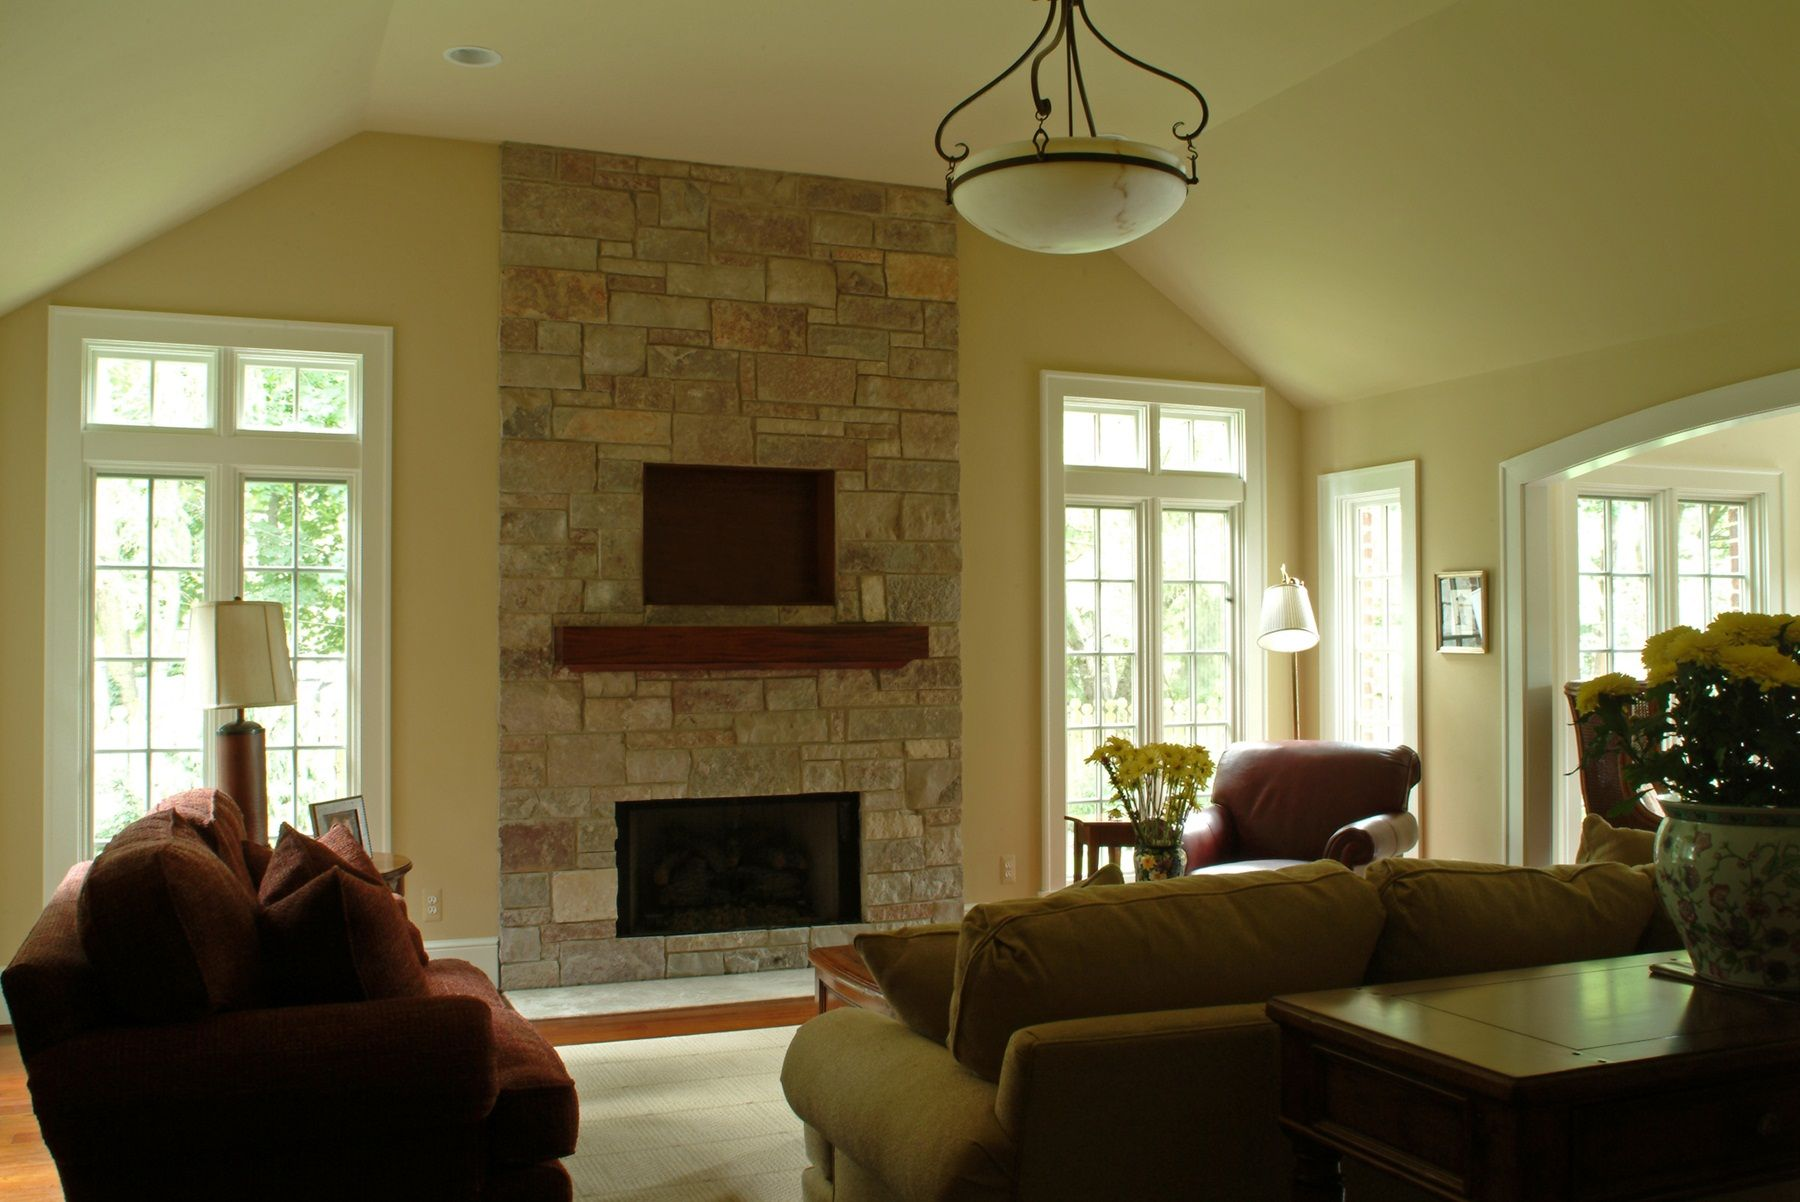 17 Best Images About Family Room Addition On Pinterest